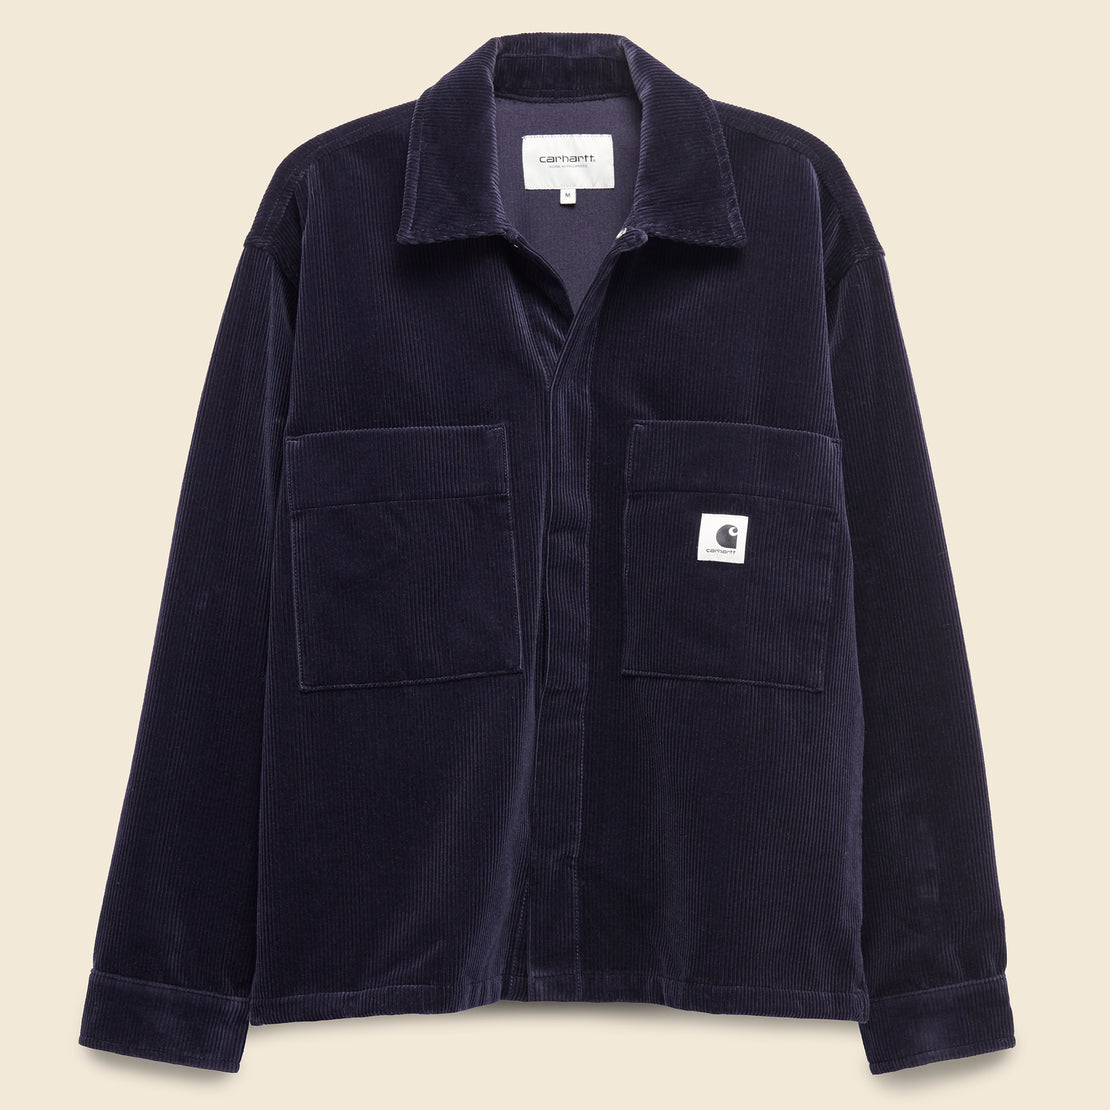 Carhartt WIP Foya Shirt Jacket - Dark Navy